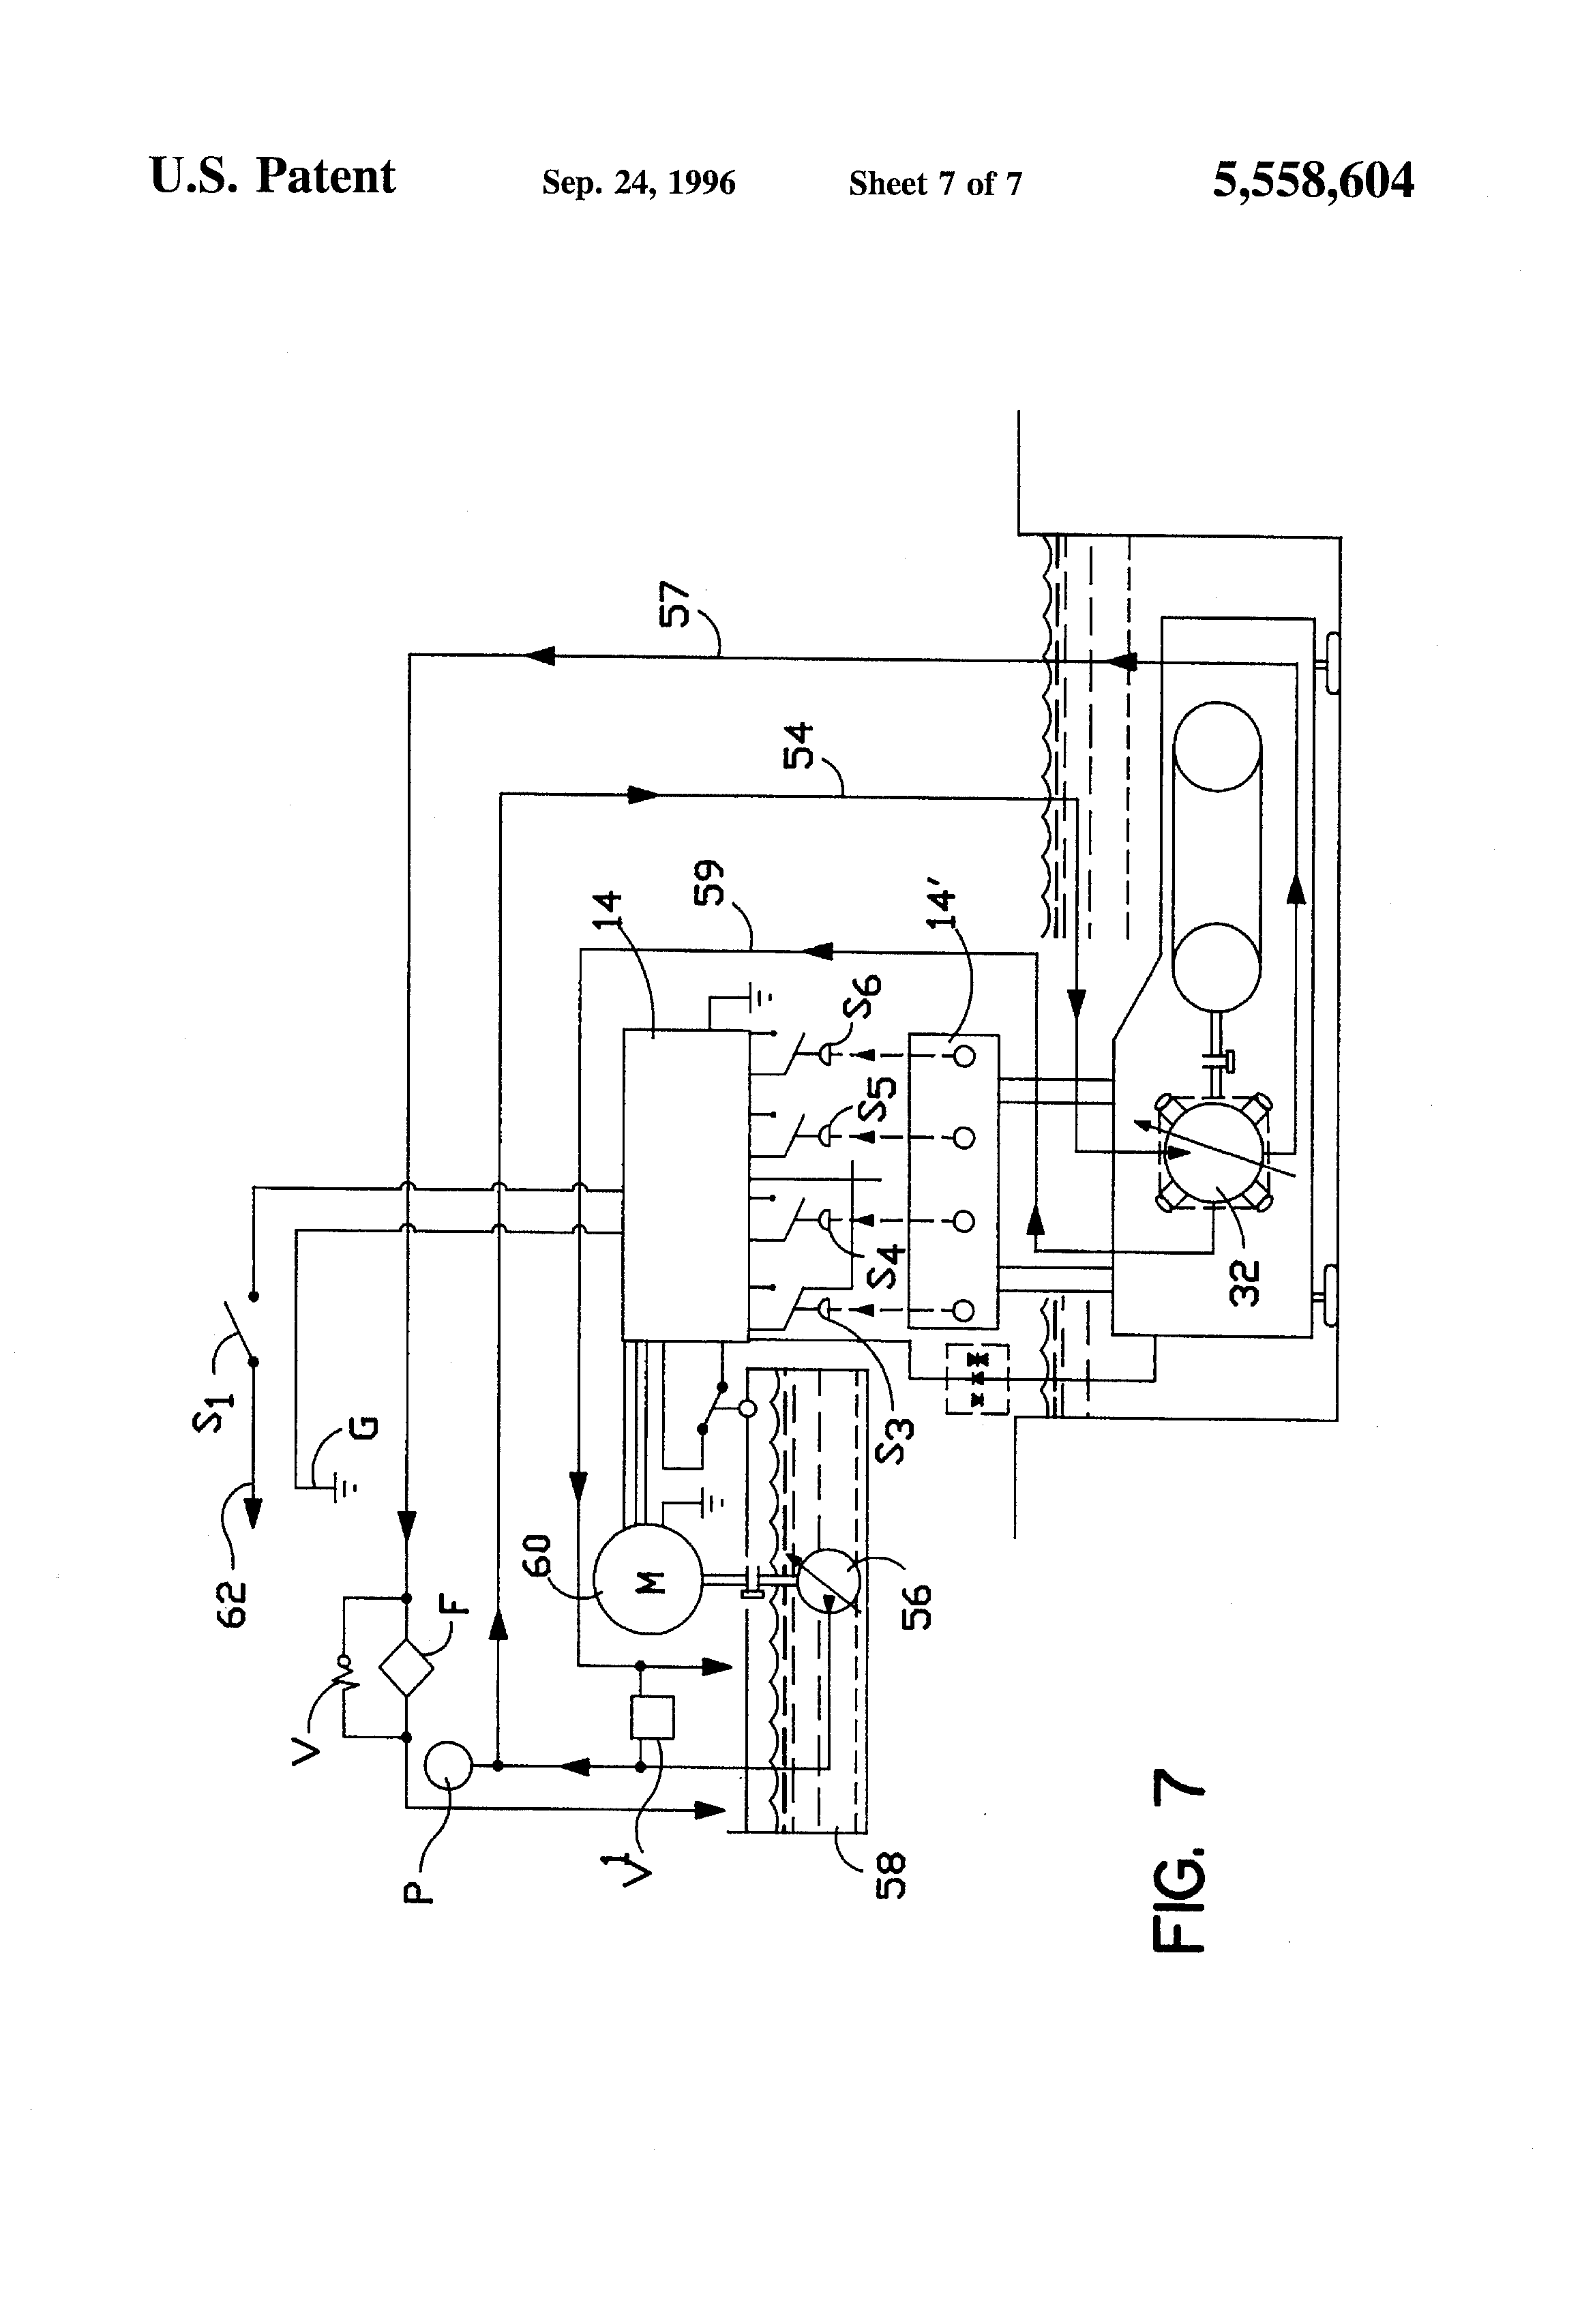 patent us5558604 aquatic treadmill apparatus google patents Ajax Electric Motor Wiring Diagram Ajax Electric Motor Wiring Diagram #7 ajax electric motor wiring diagram